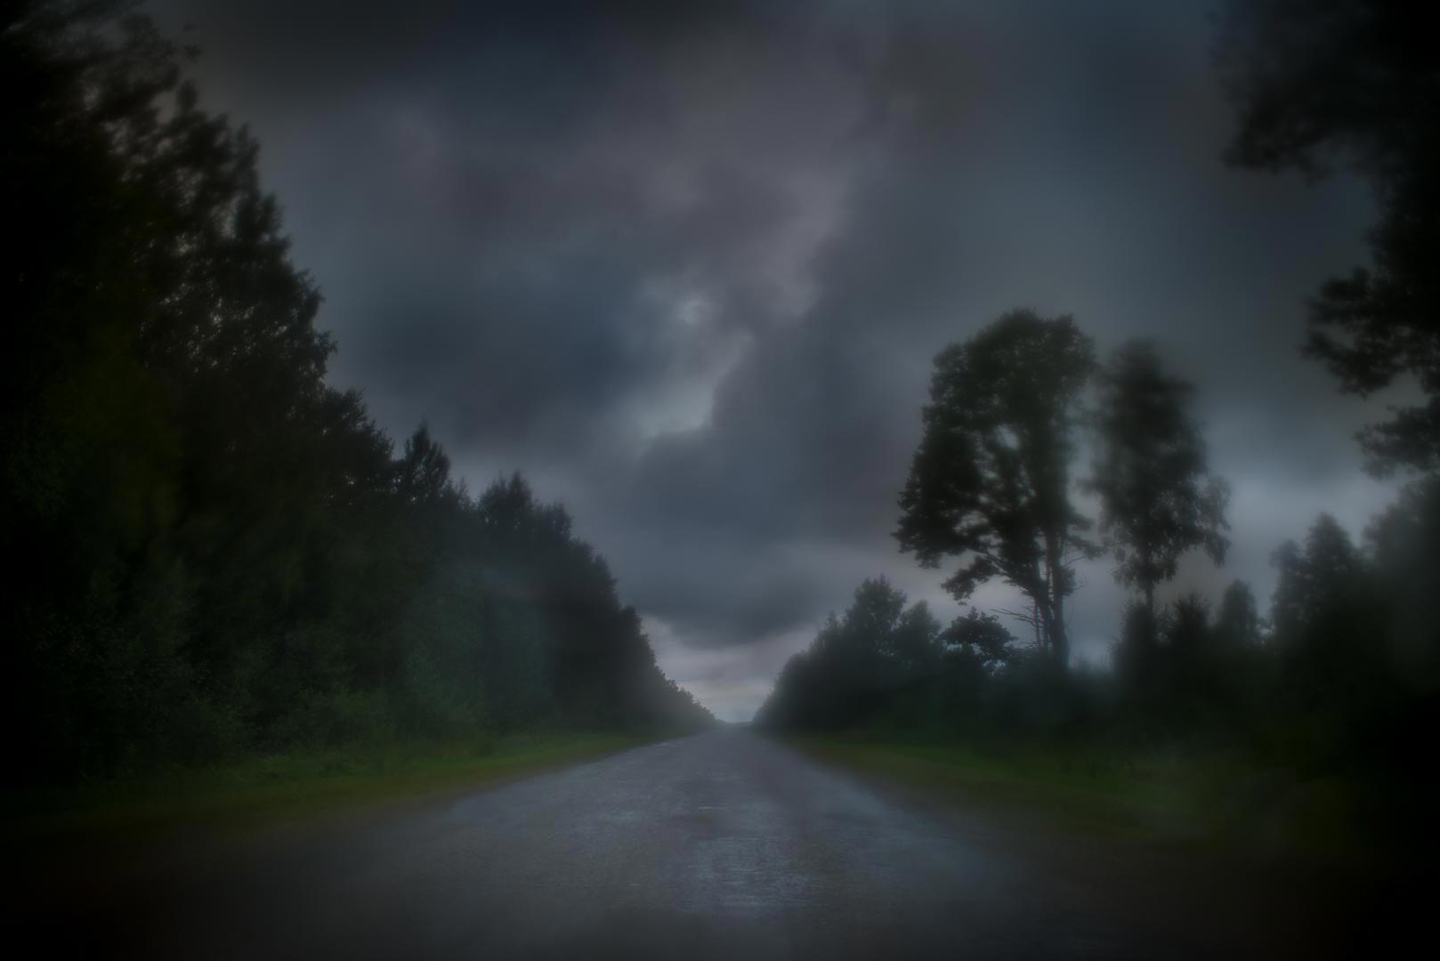 Todd Hido: Bright Black World, Deluxe Limited Edition (with 15 Archival Pigment Prints) [SIGNED] - PRE-ORDER